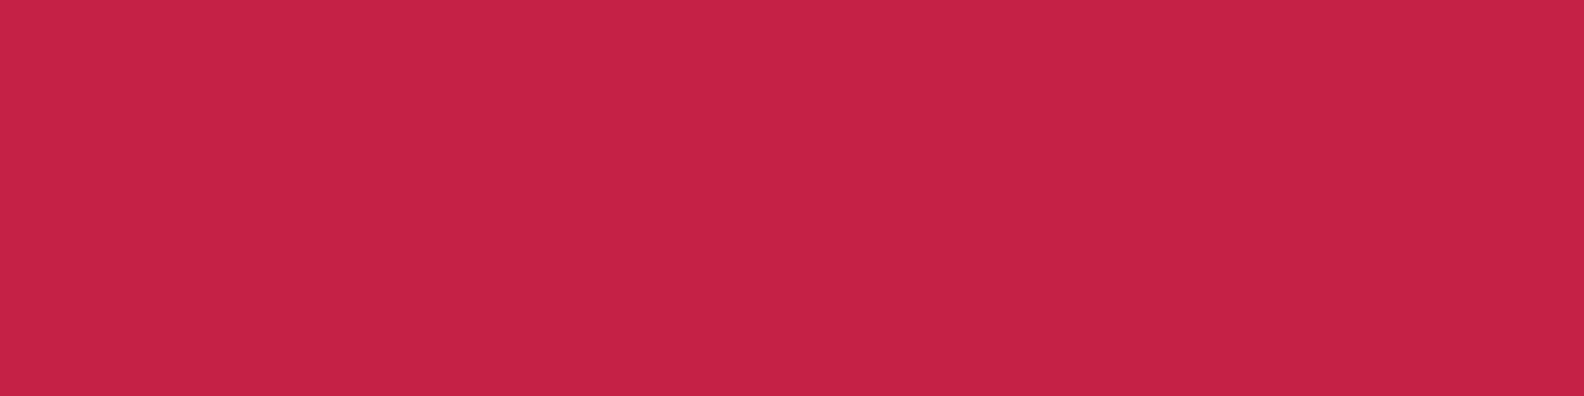 1584x396 Bright Maroon Solid Color Background